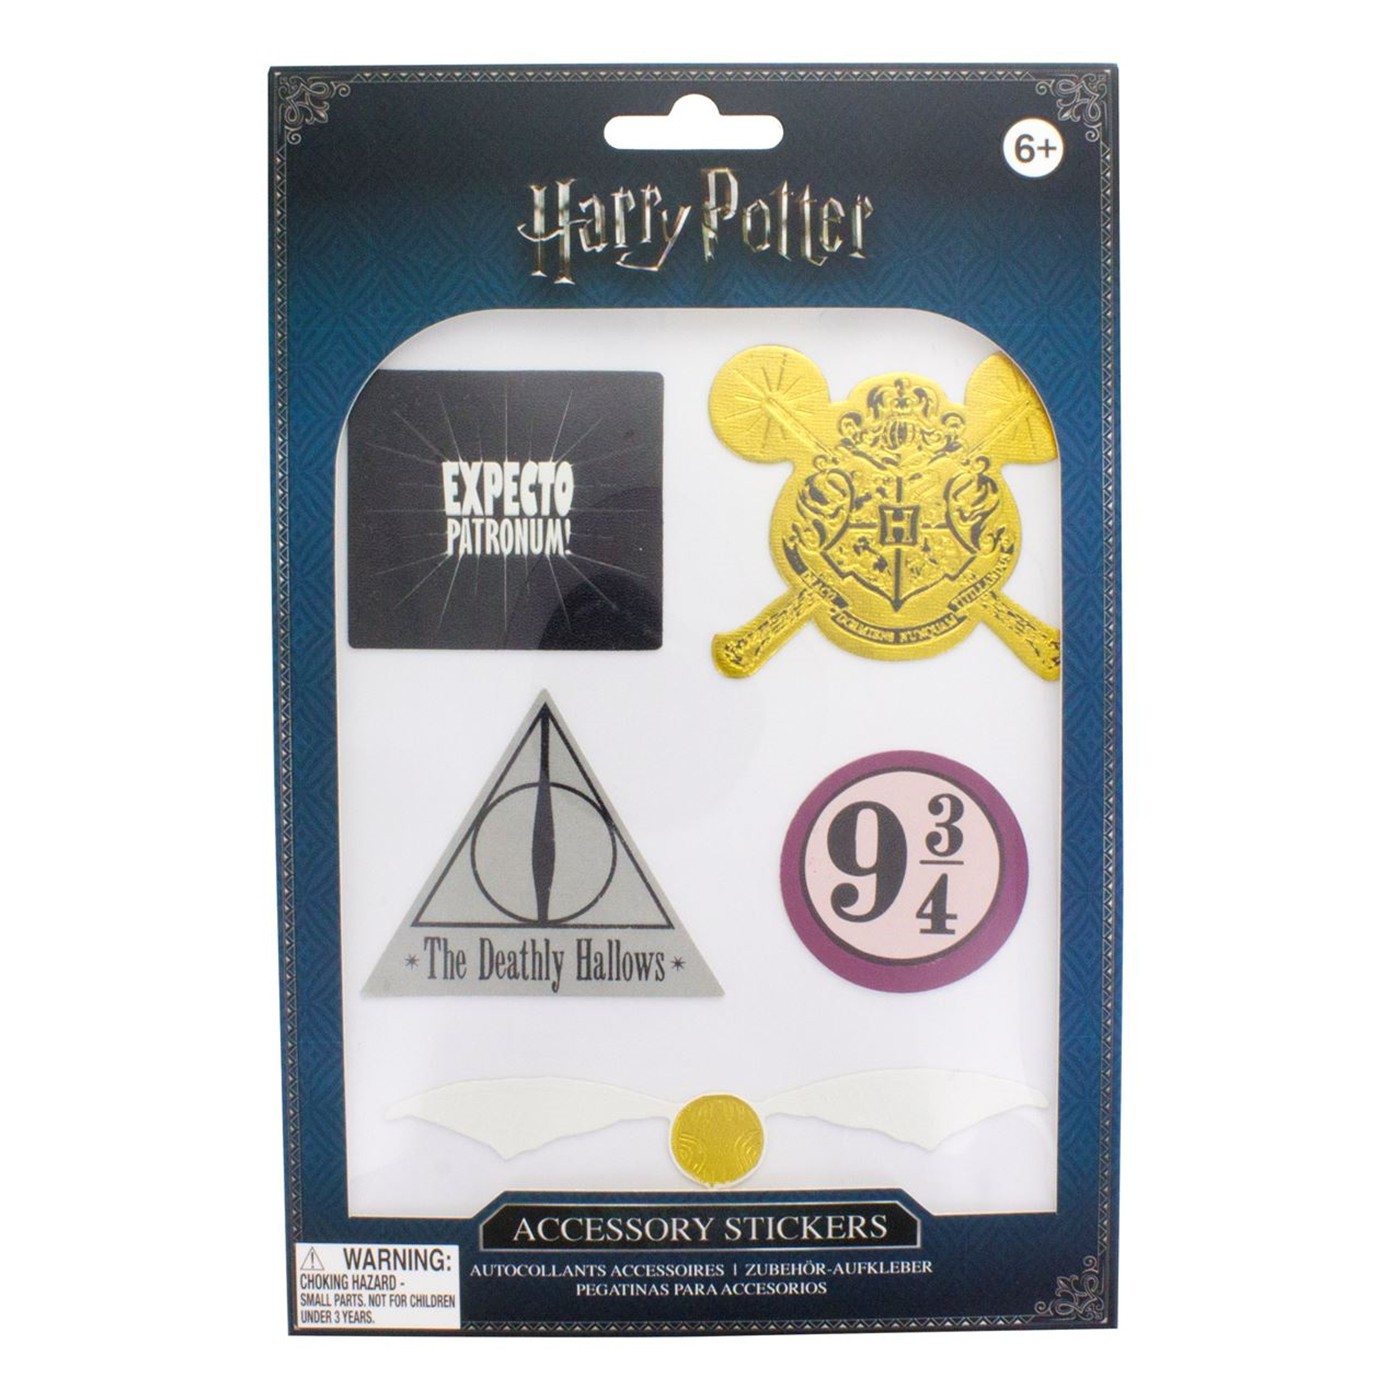 Harry Potter Accessory Stickers